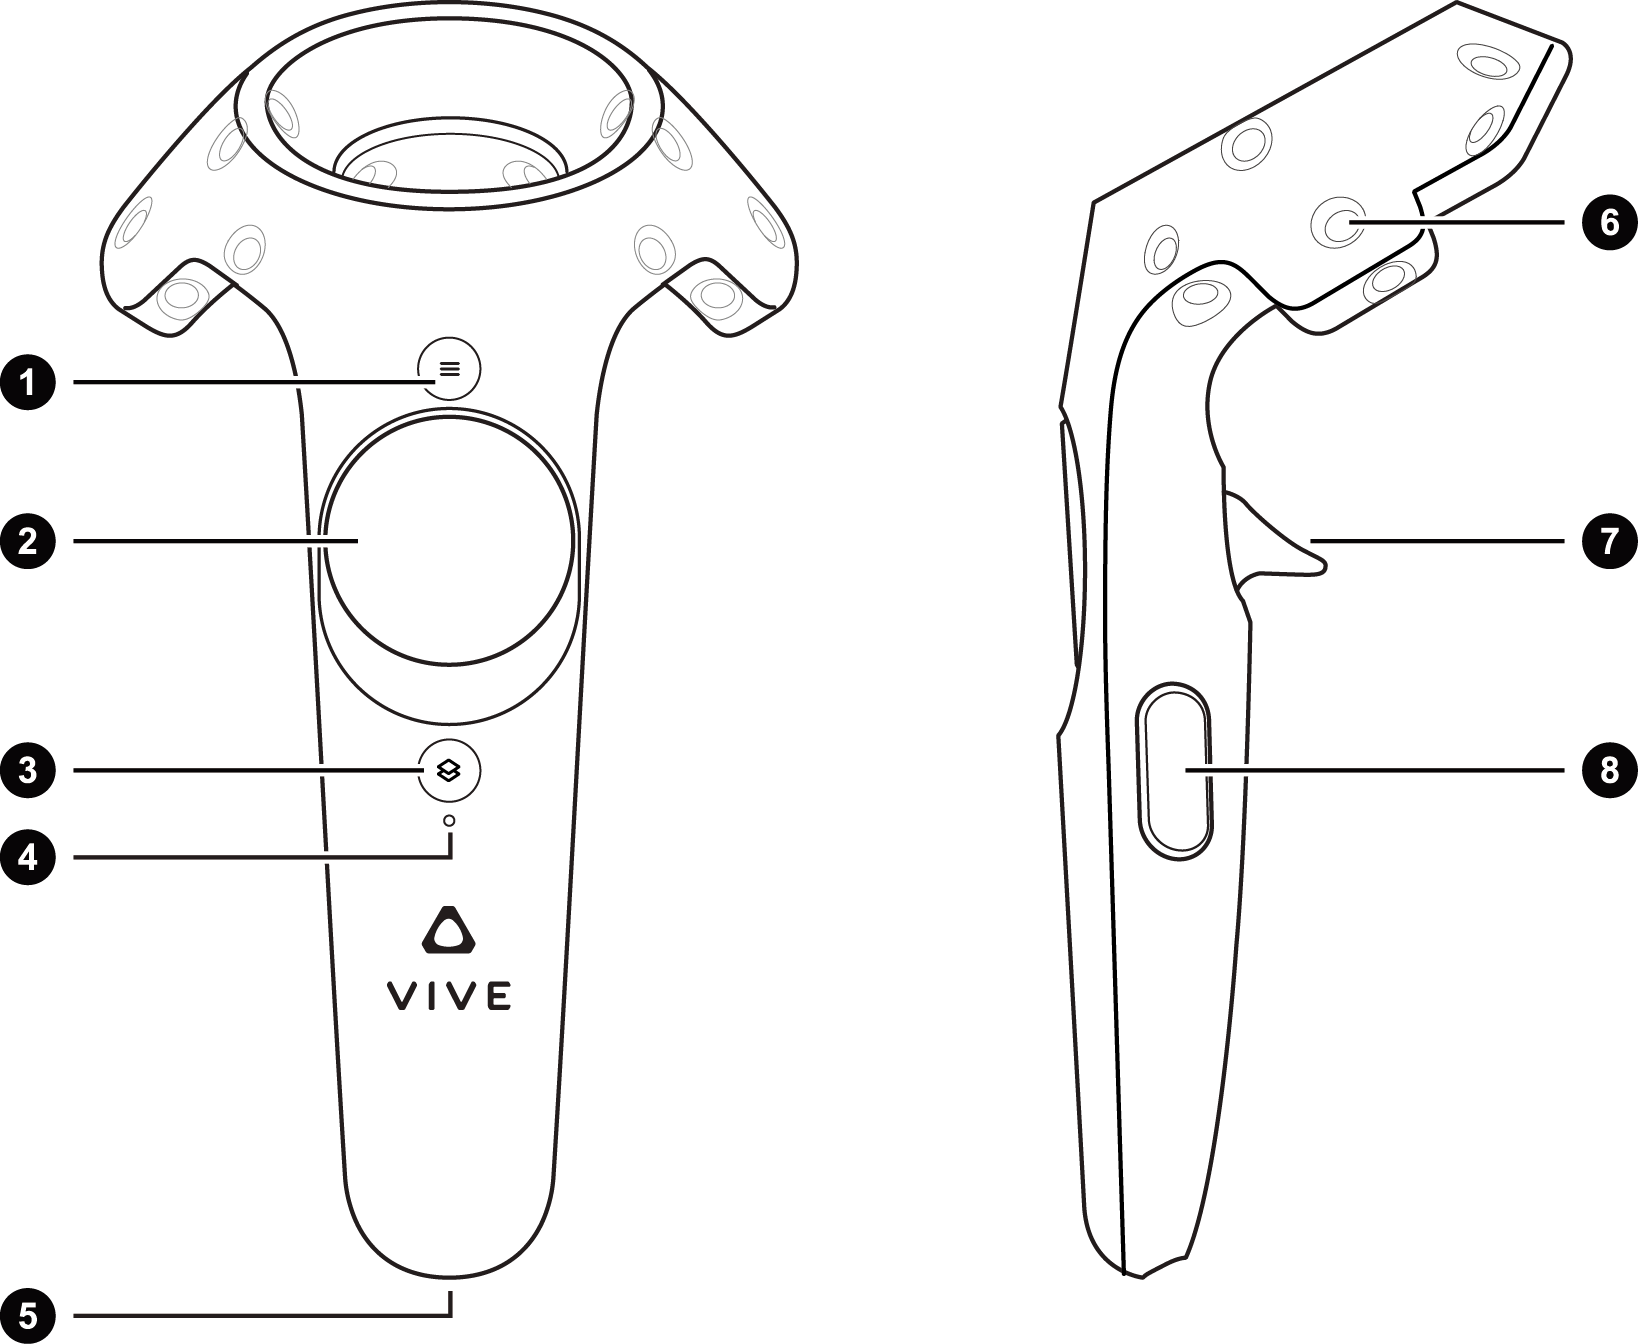 simple chopper wiring diagram with Wiring Diagram For Apple Tv on Lionel 1121 Switch Wiring Schematics further Shadow 600 Headlight Wiring Harness likewise I Love These Types Of Diagrams as well Simple Shovelhead Wiring Diagram For Harley Davidson likewise Ironhead engine diagram.